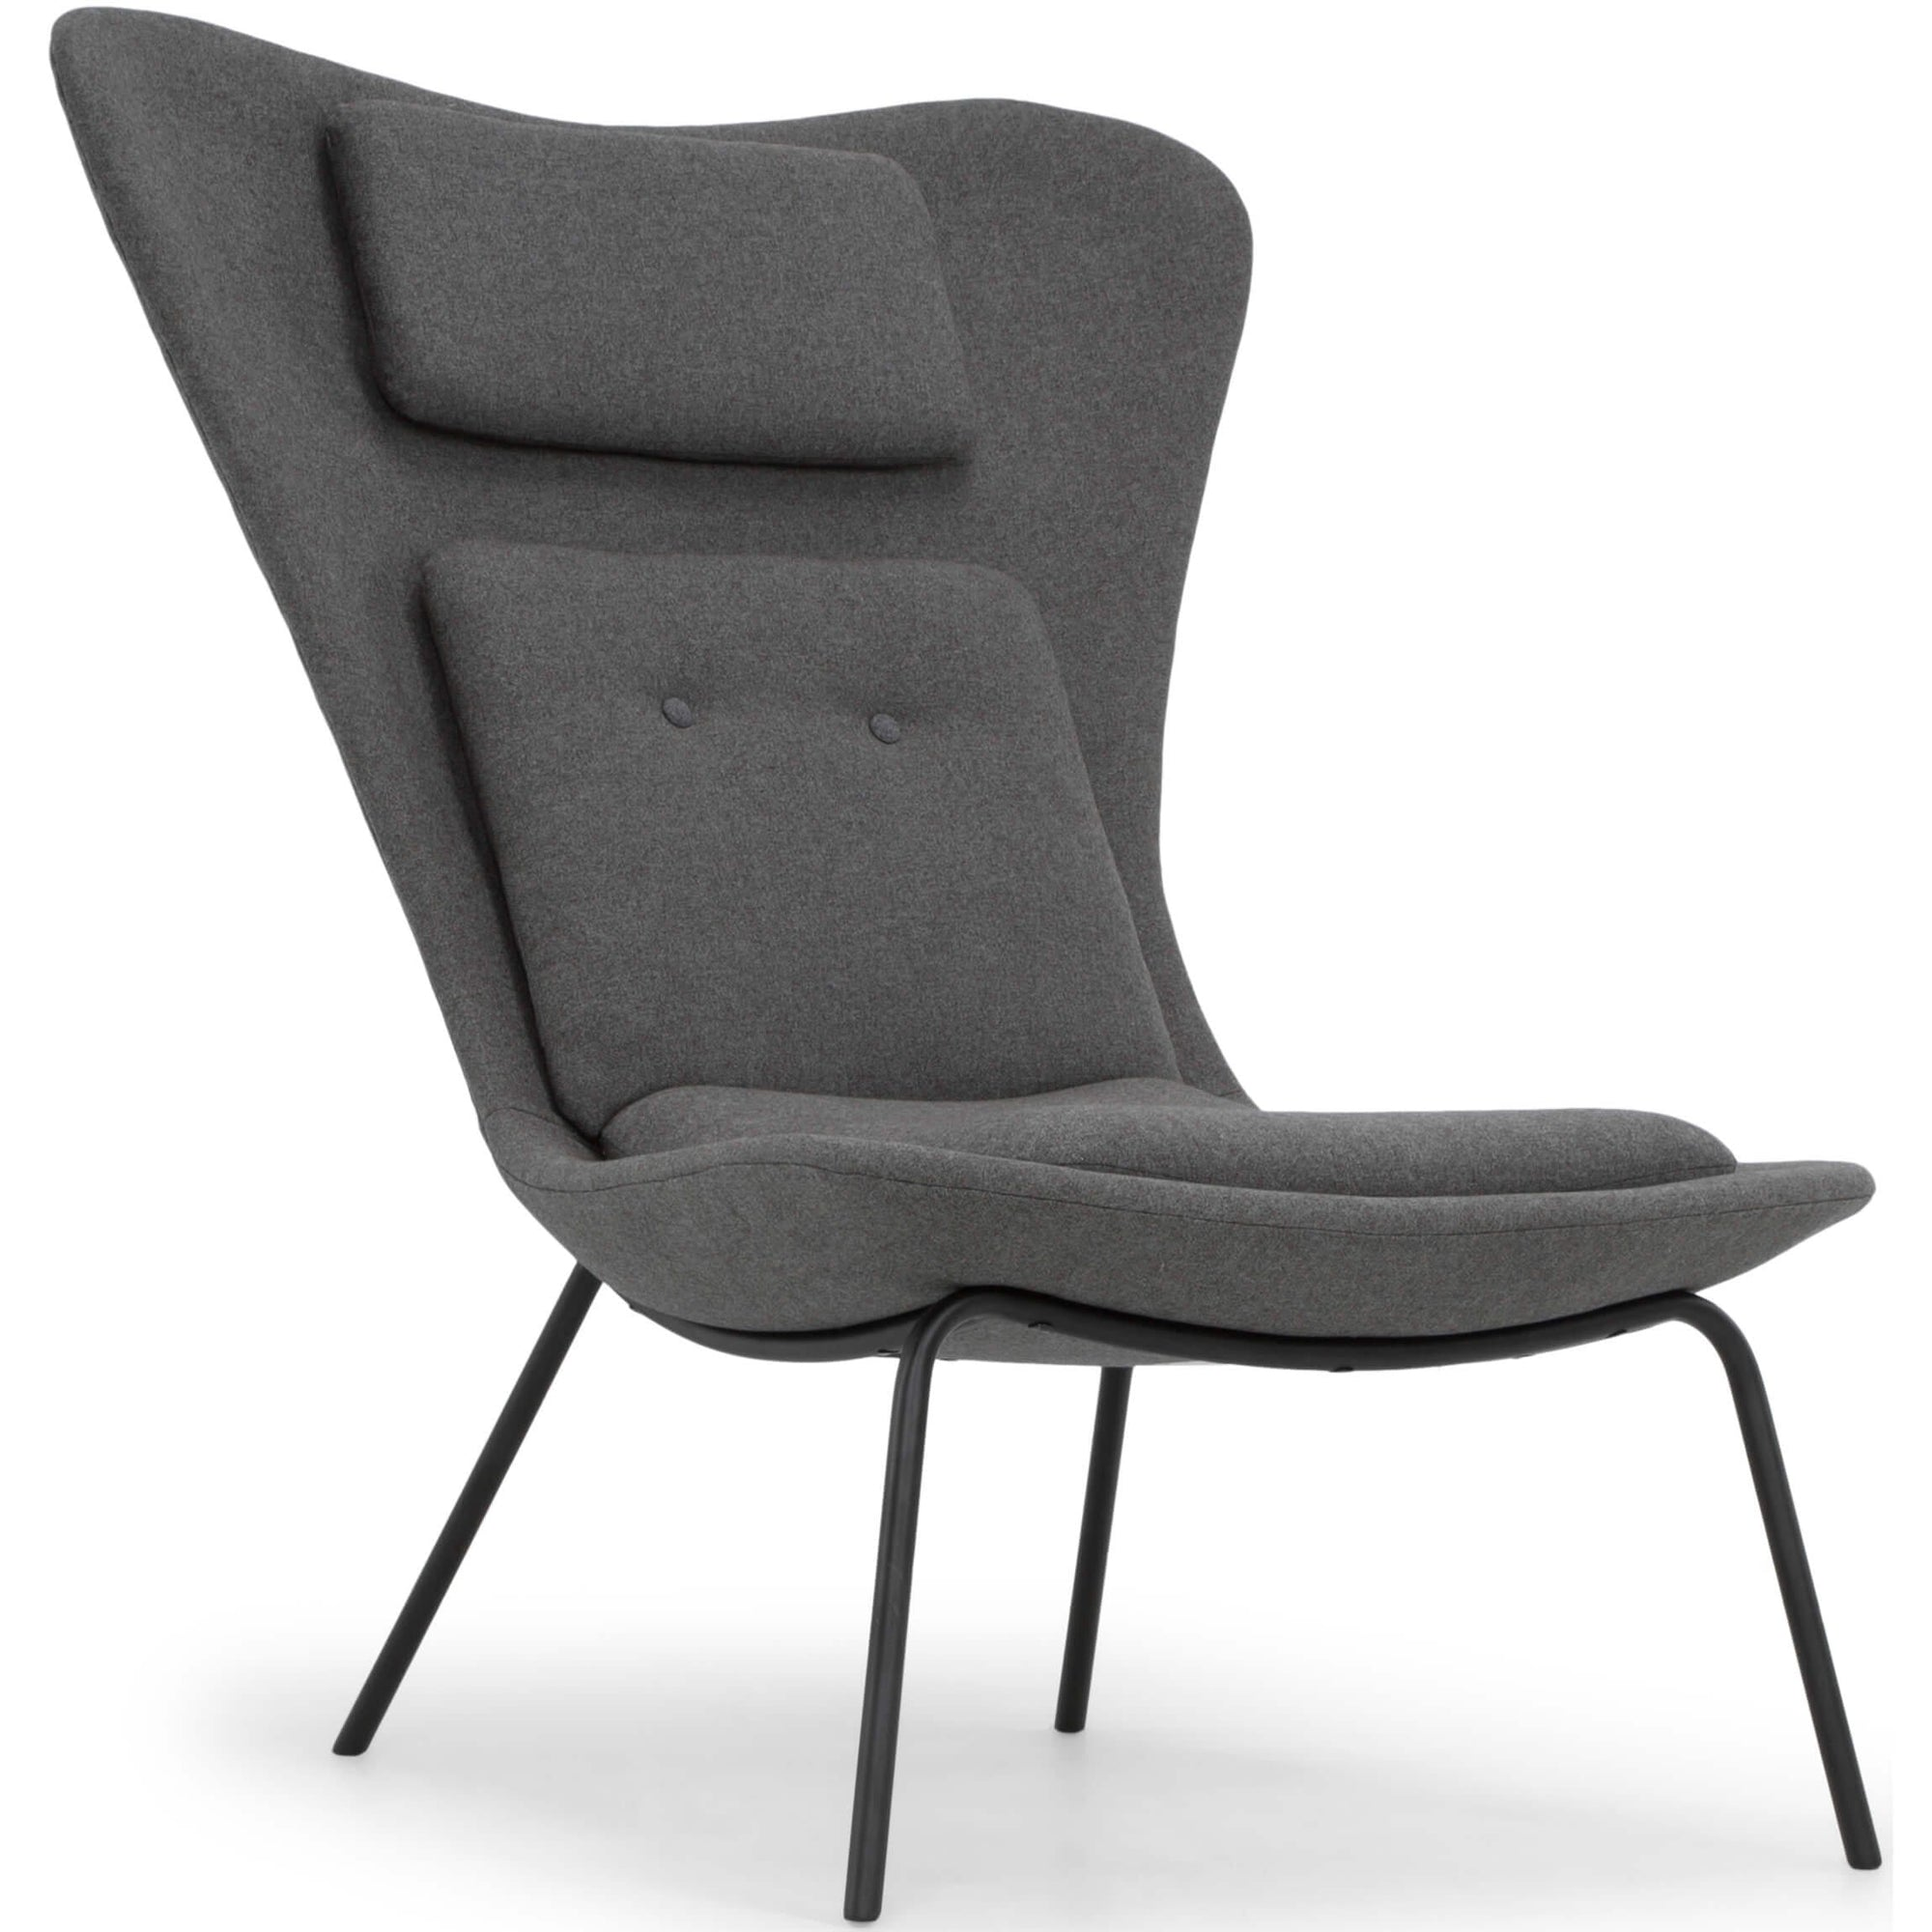 Excellent Barlow Chair Fossil Grey High Fashion Home Theyellowbook Wood Chair Design Ideas Theyellowbookinfo